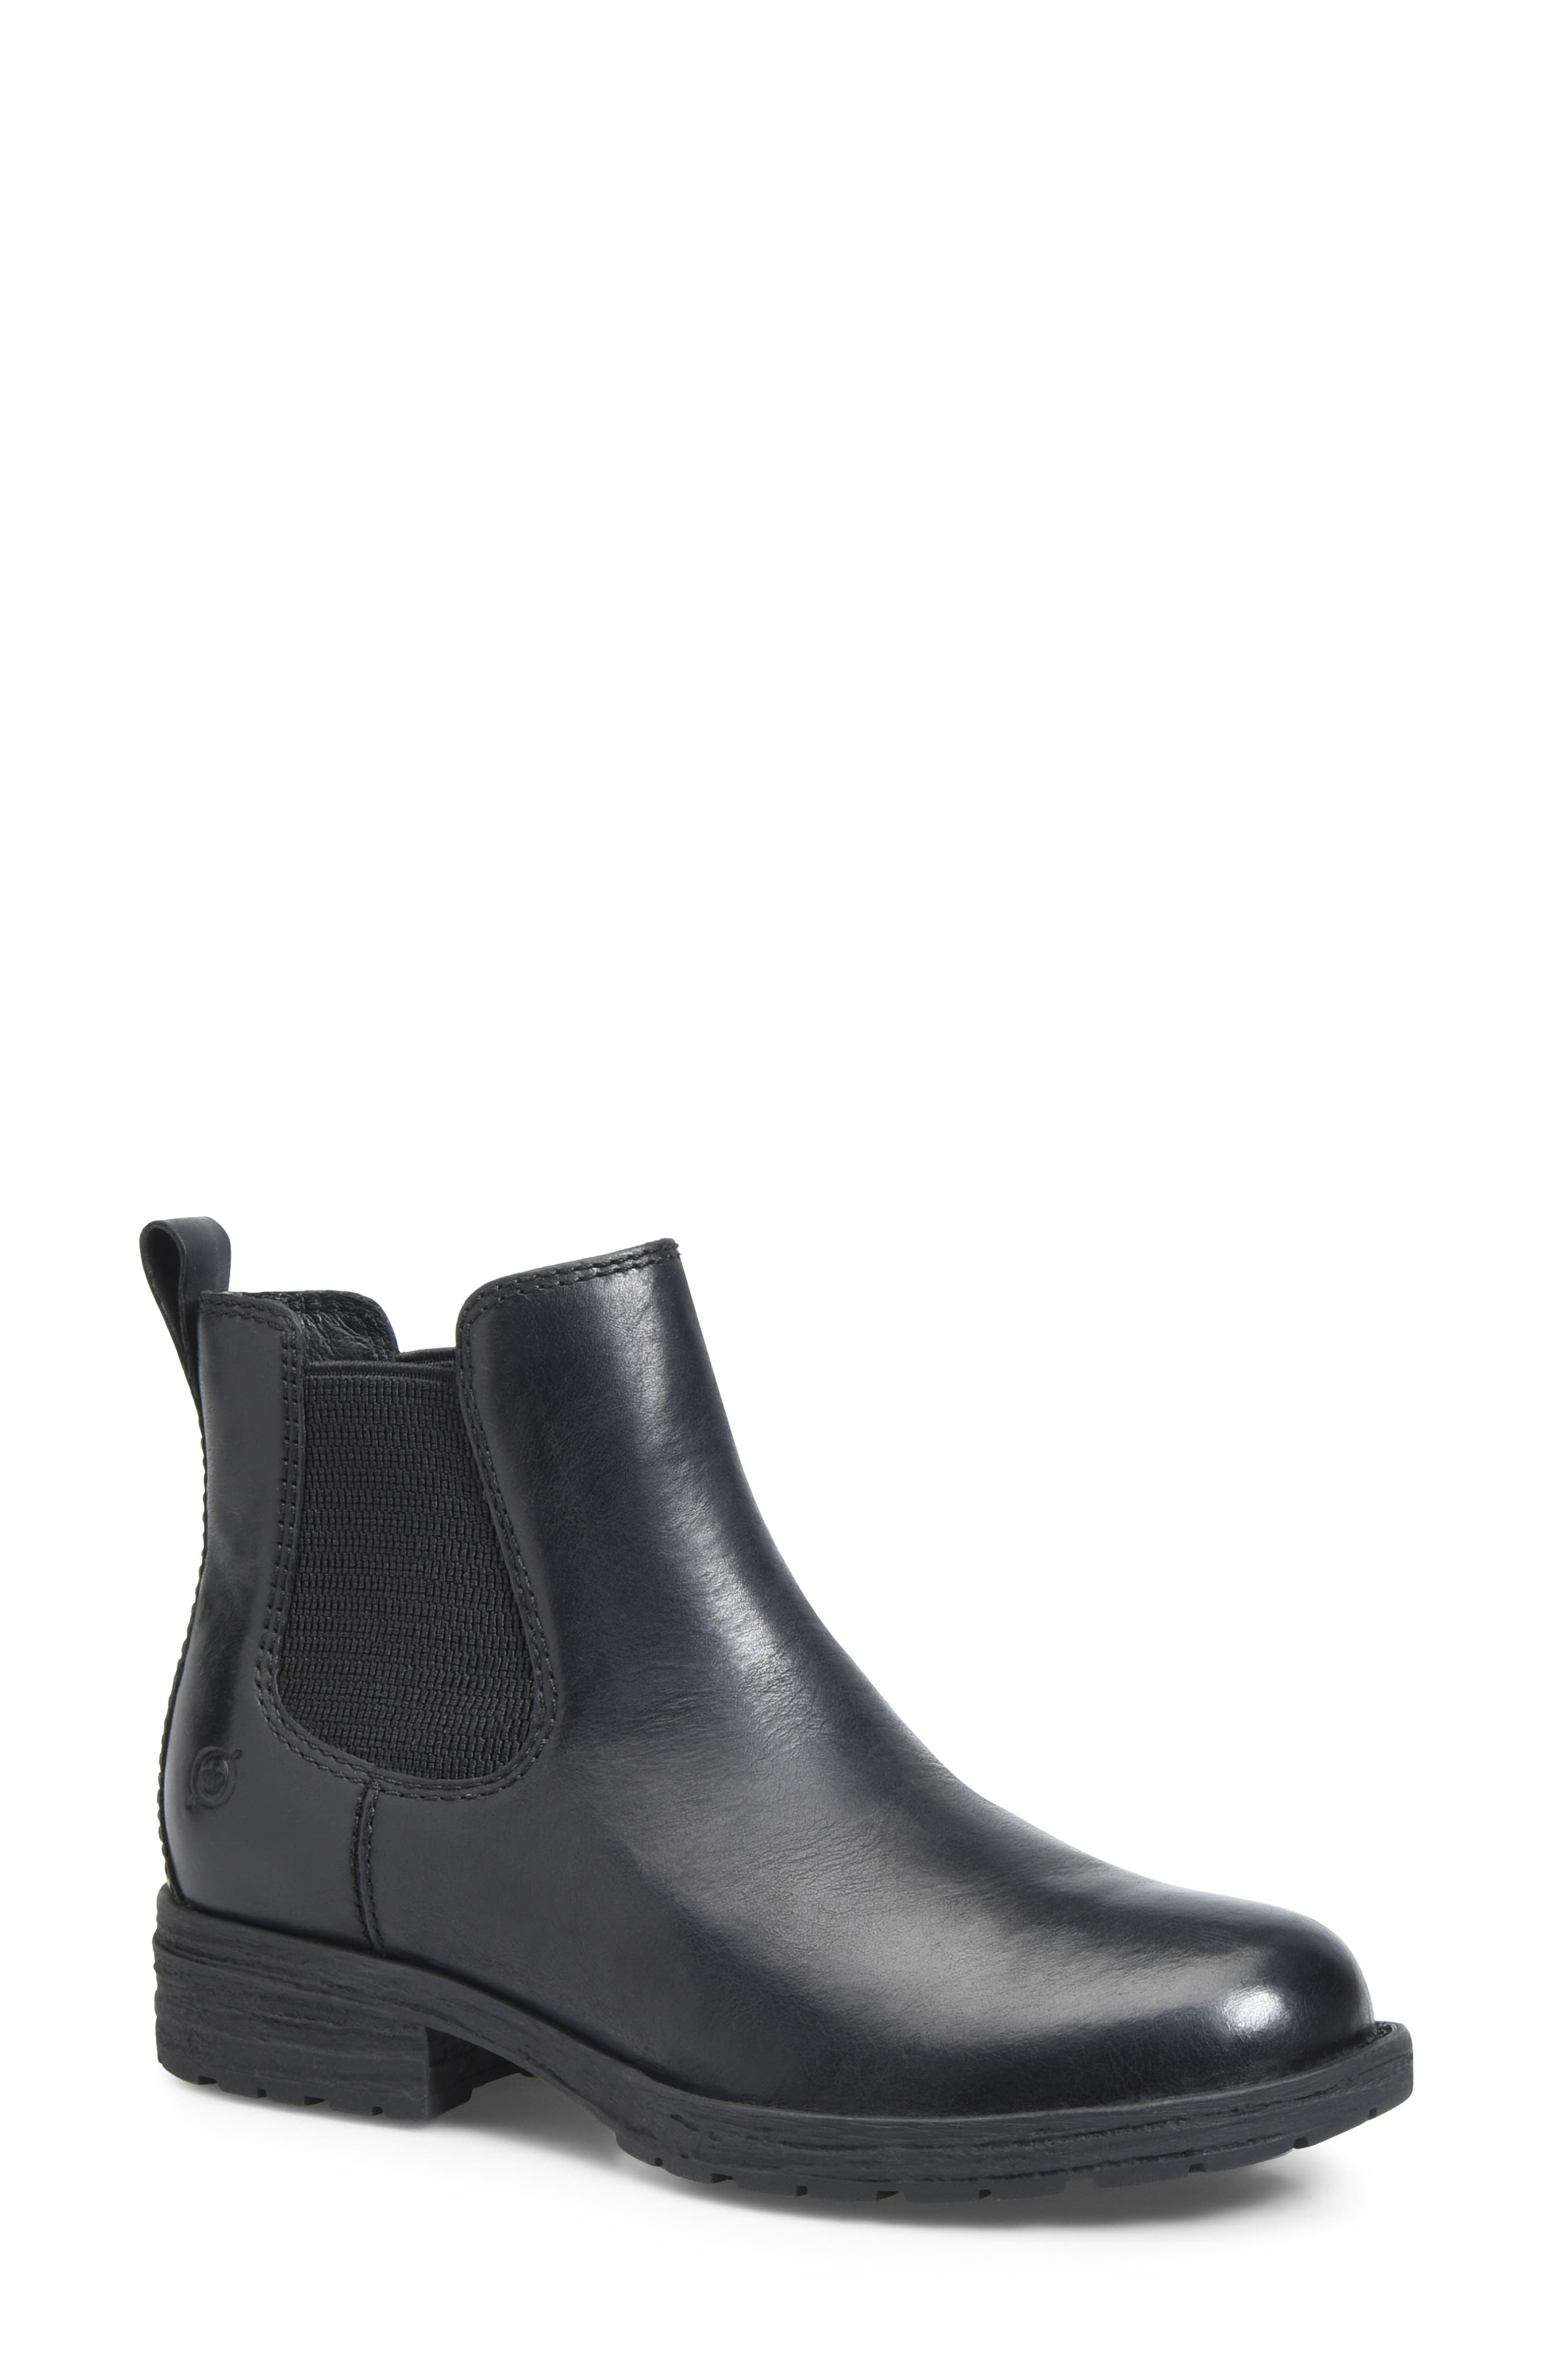 Cove Waterproof Chelsea Boot,                         Main,                         color, BLACK DISTRESSED LEATHER